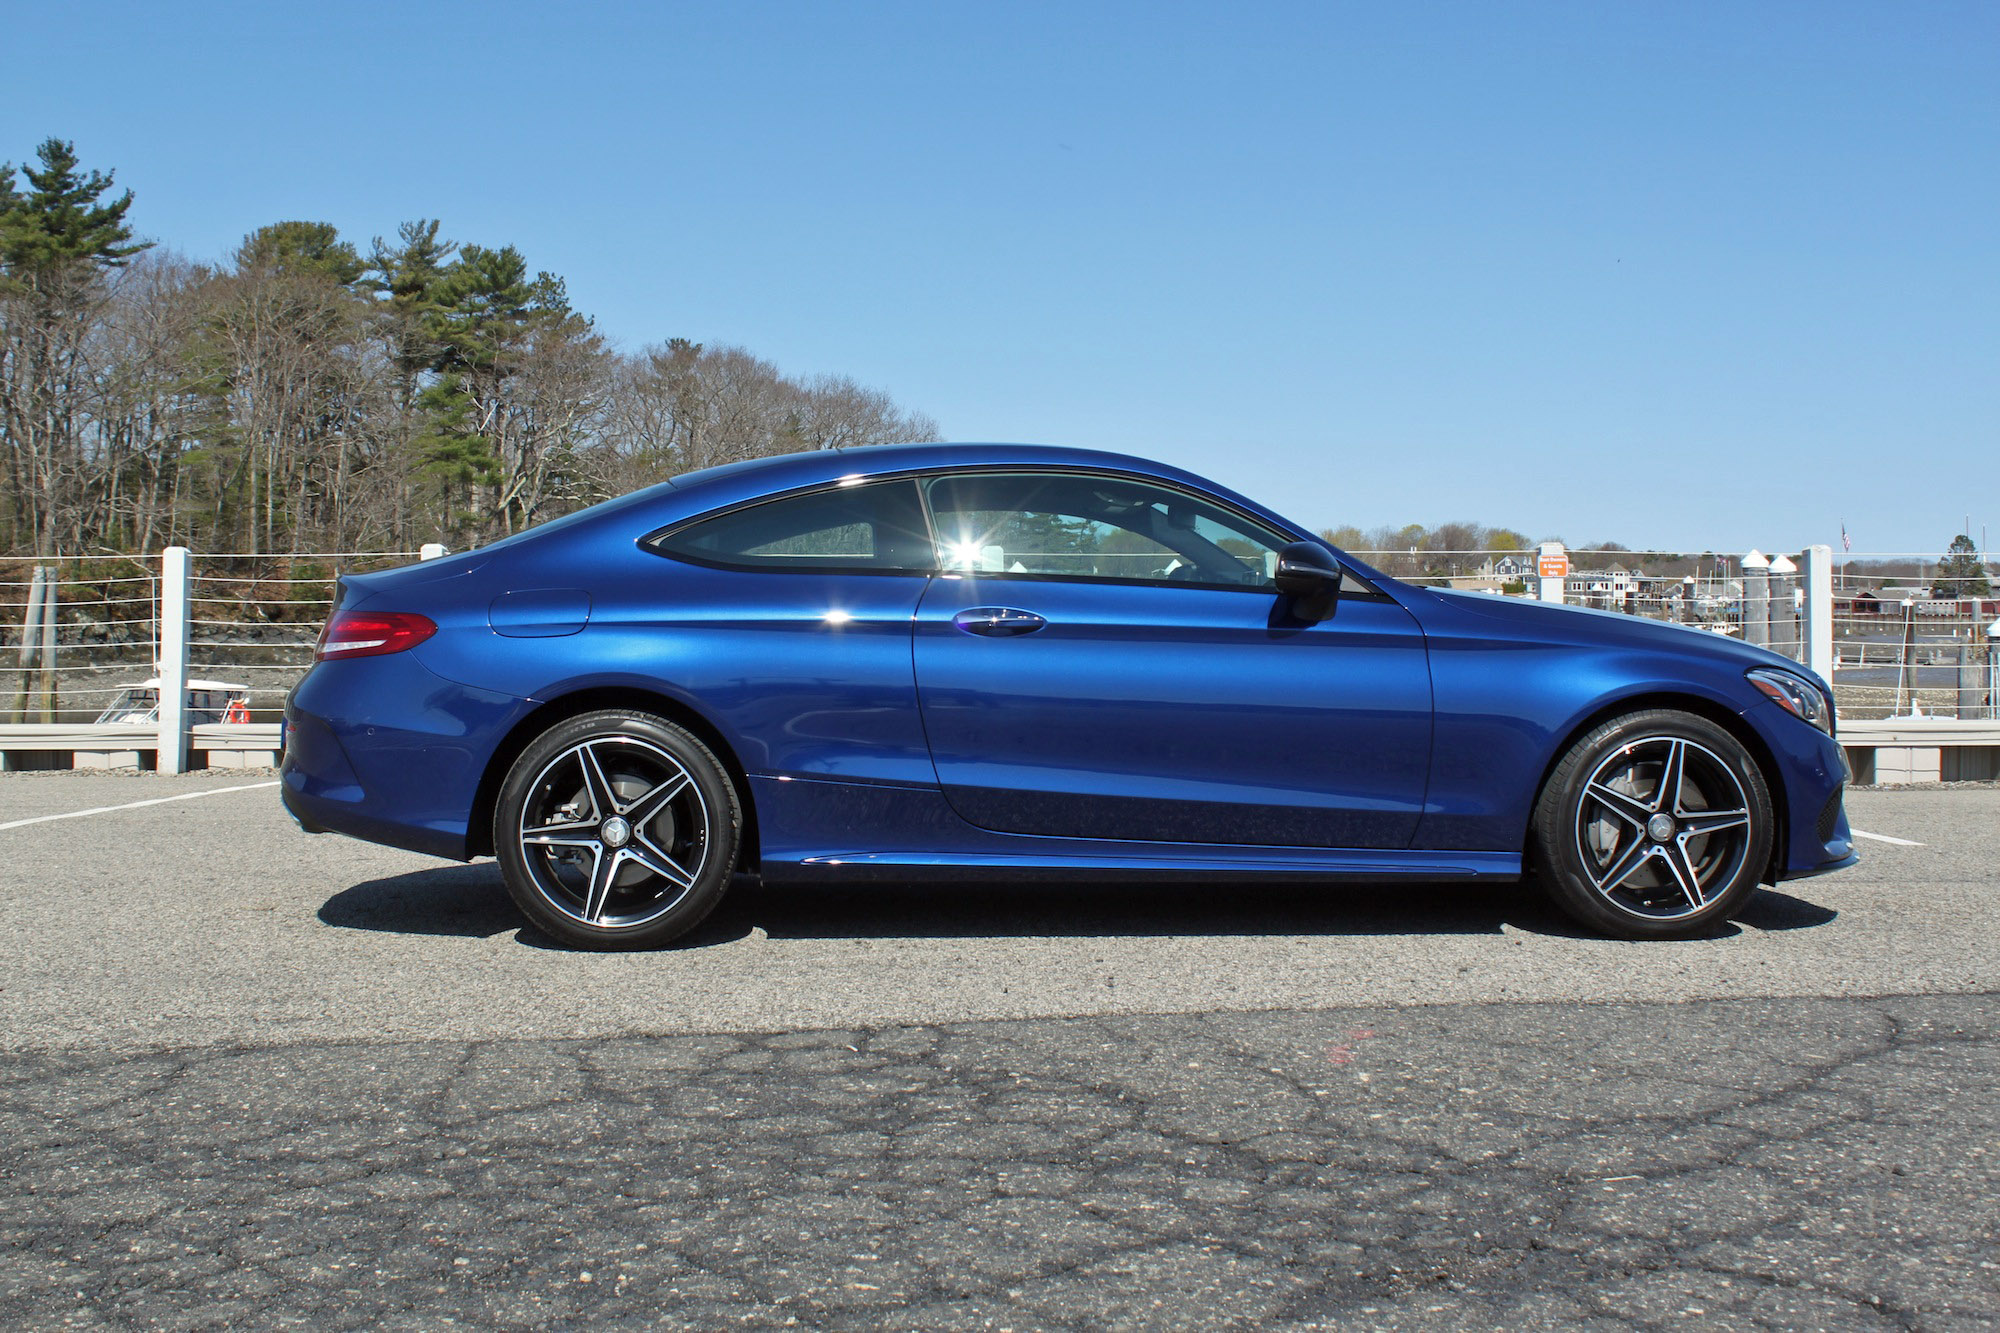 2017 Mercedes Benz C300 Coupe Review 7